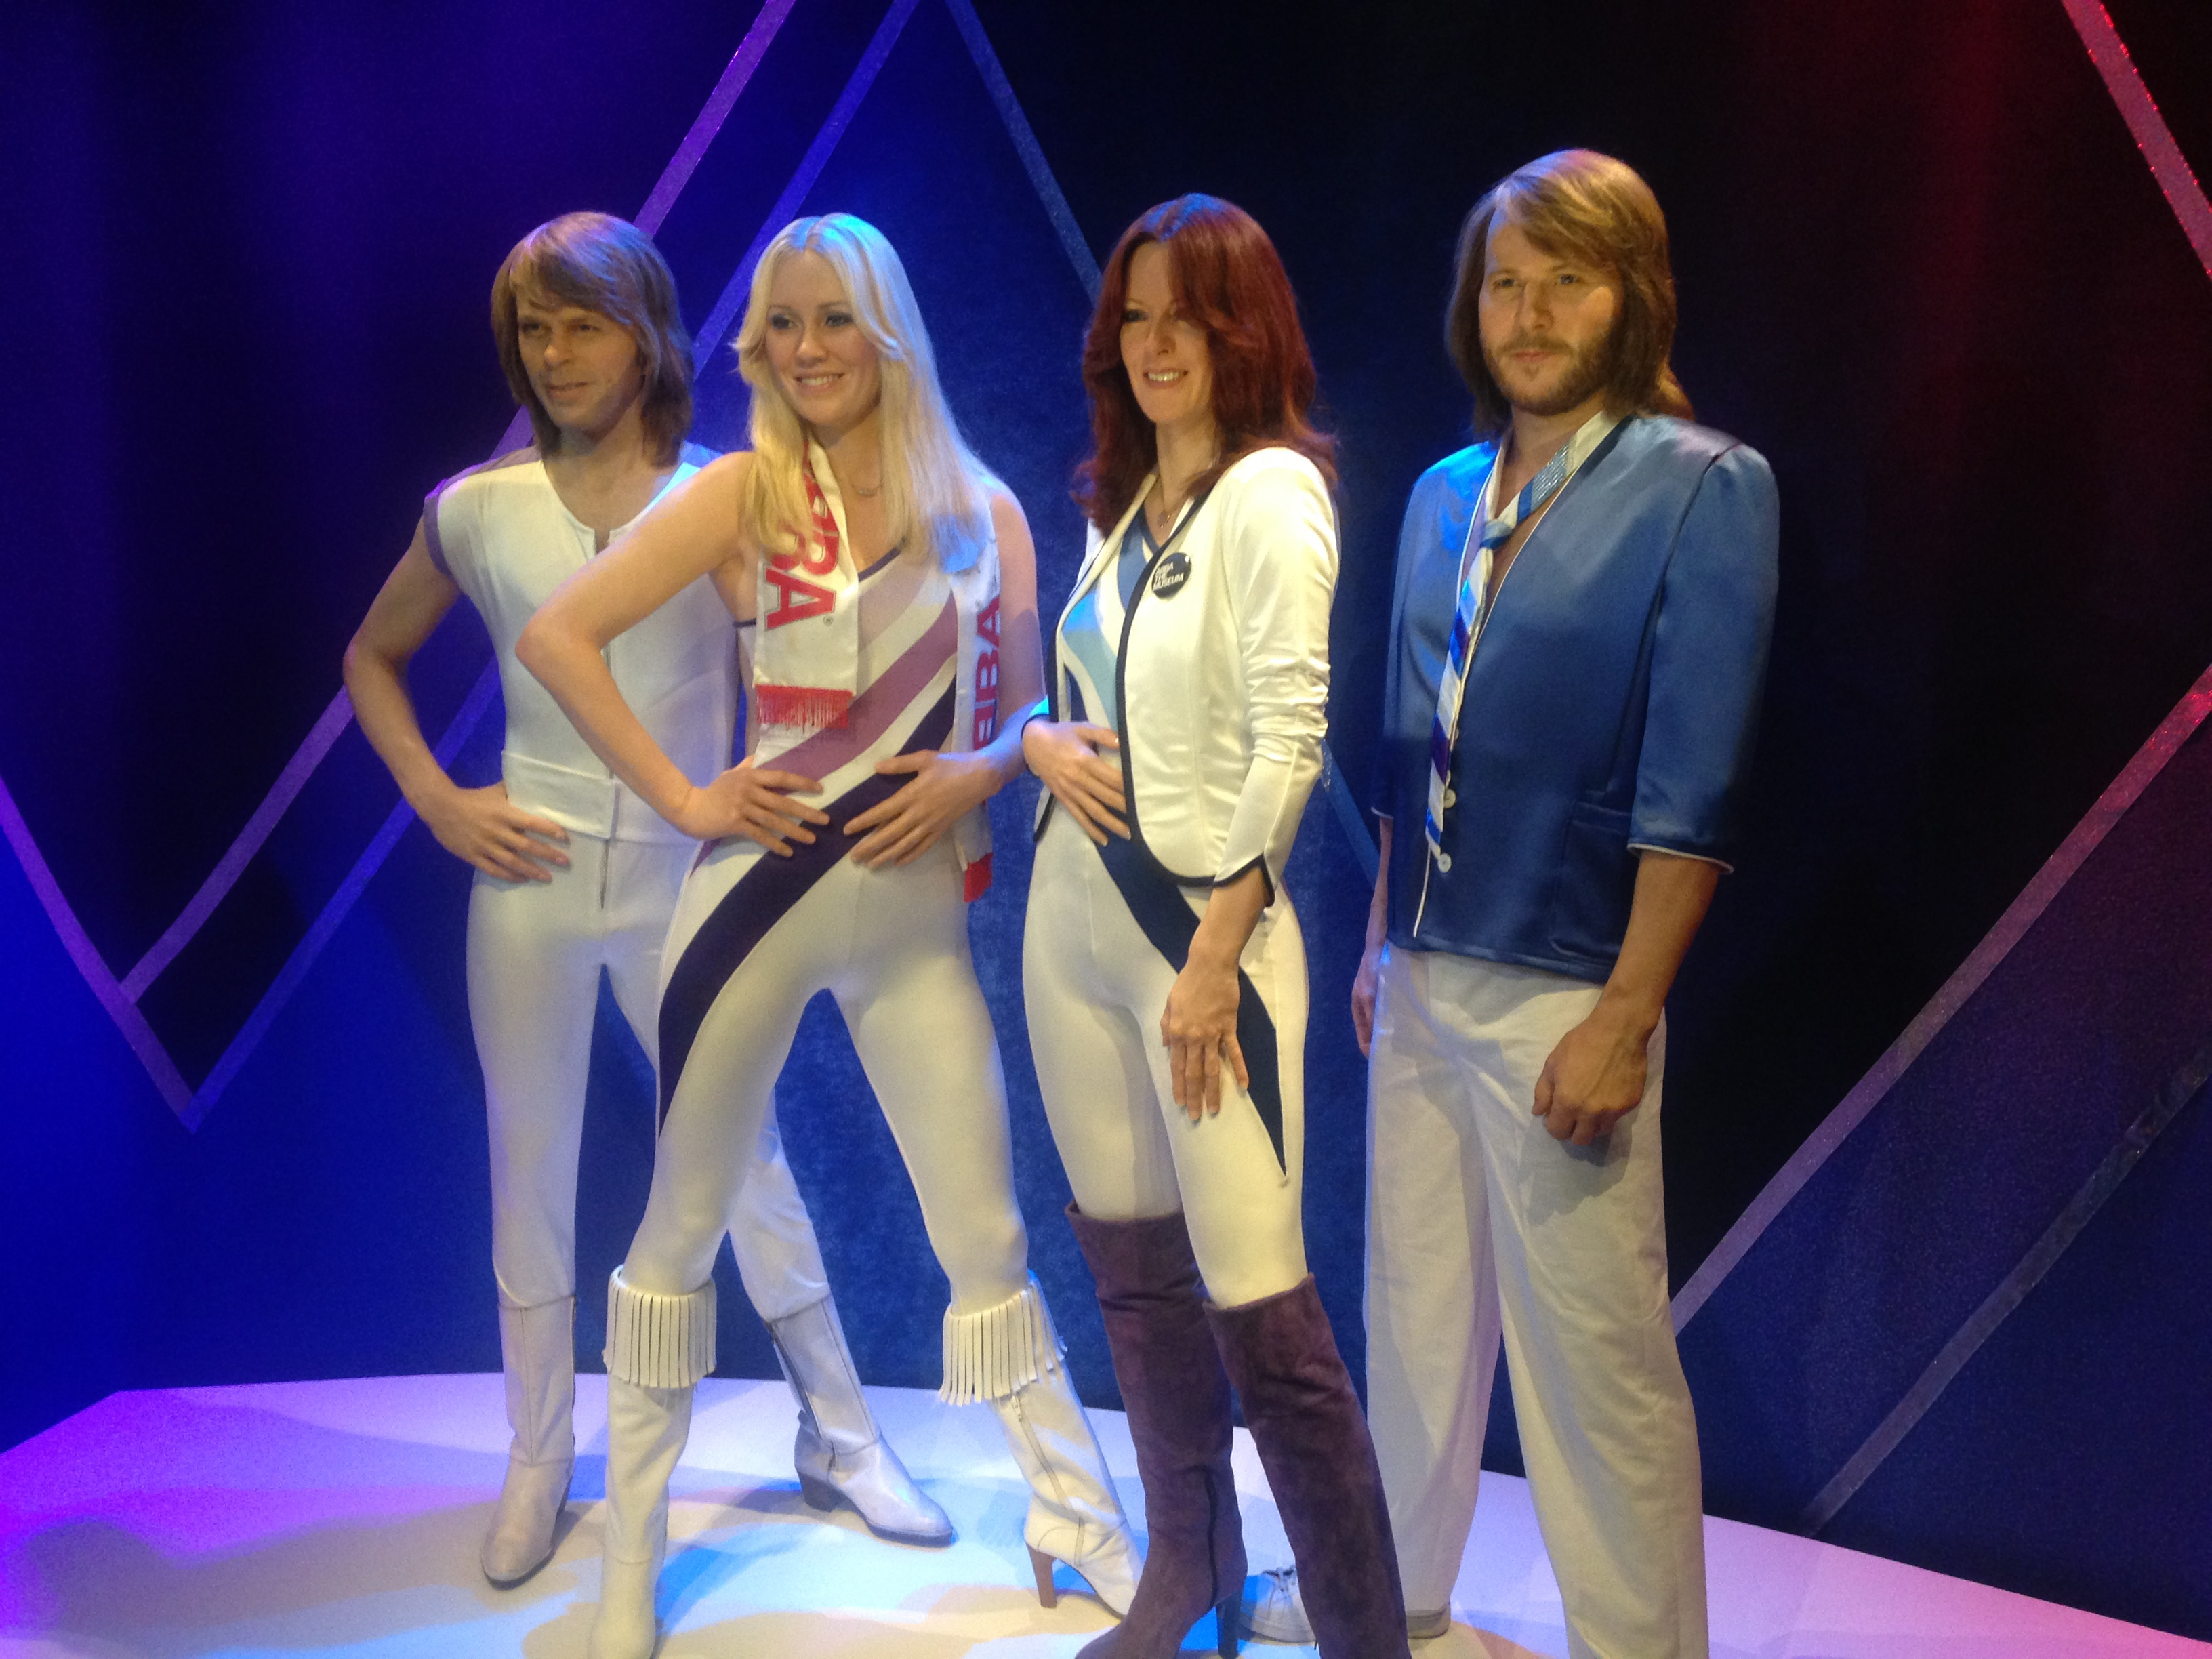 2 Days in Stockholm have to include a trip to the ABBA museum. Wax work of ABBA at the ABBA Museum, Stockholm